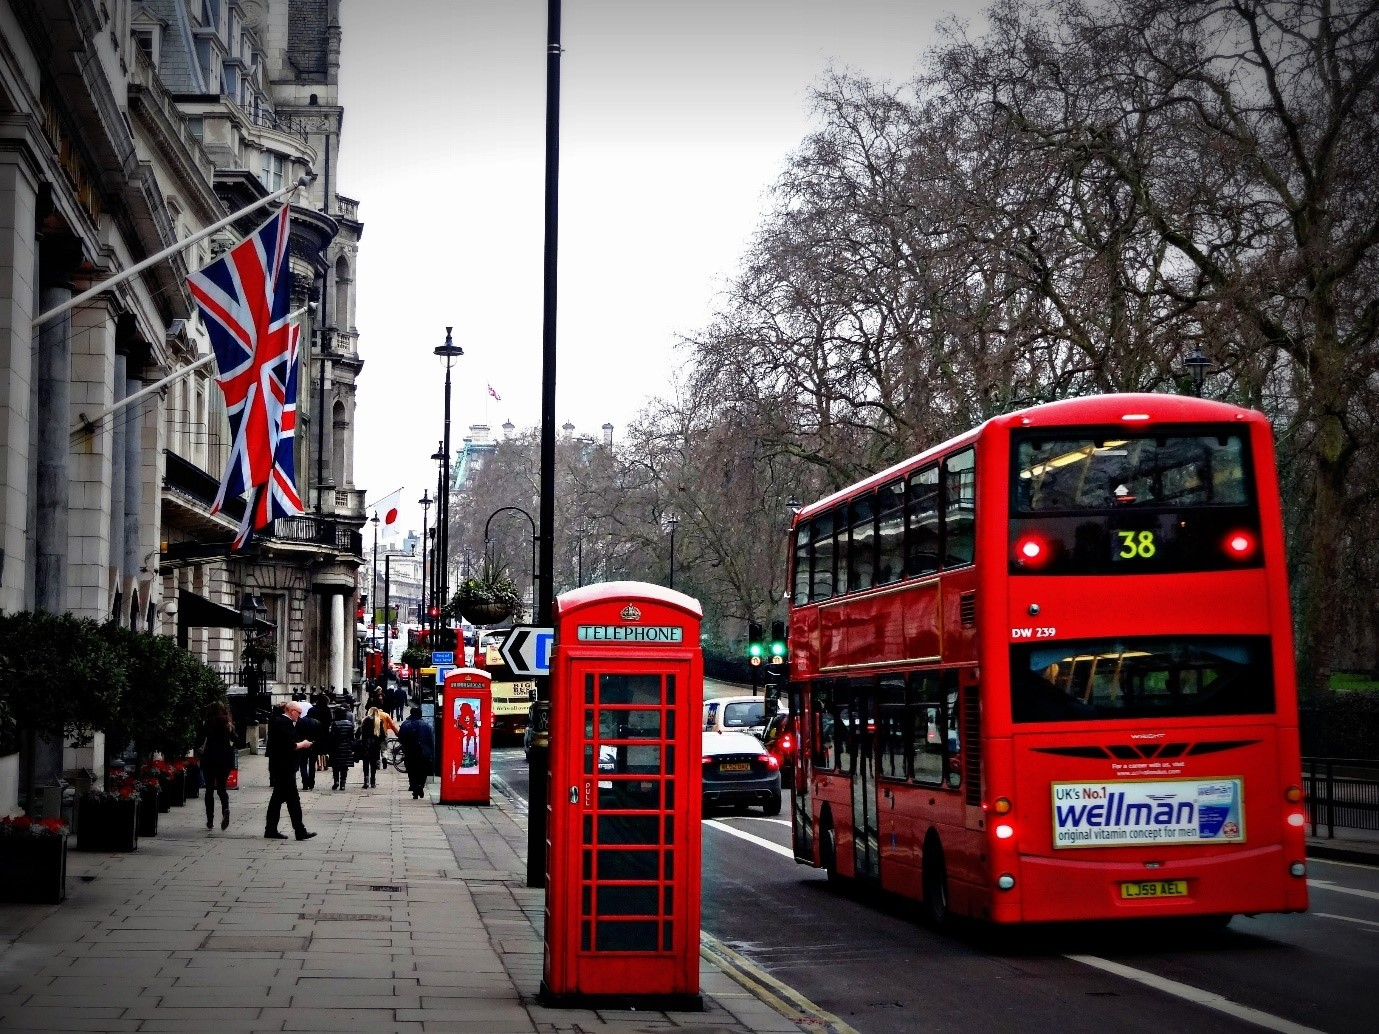 UK picture with red bus, telephone box and post box